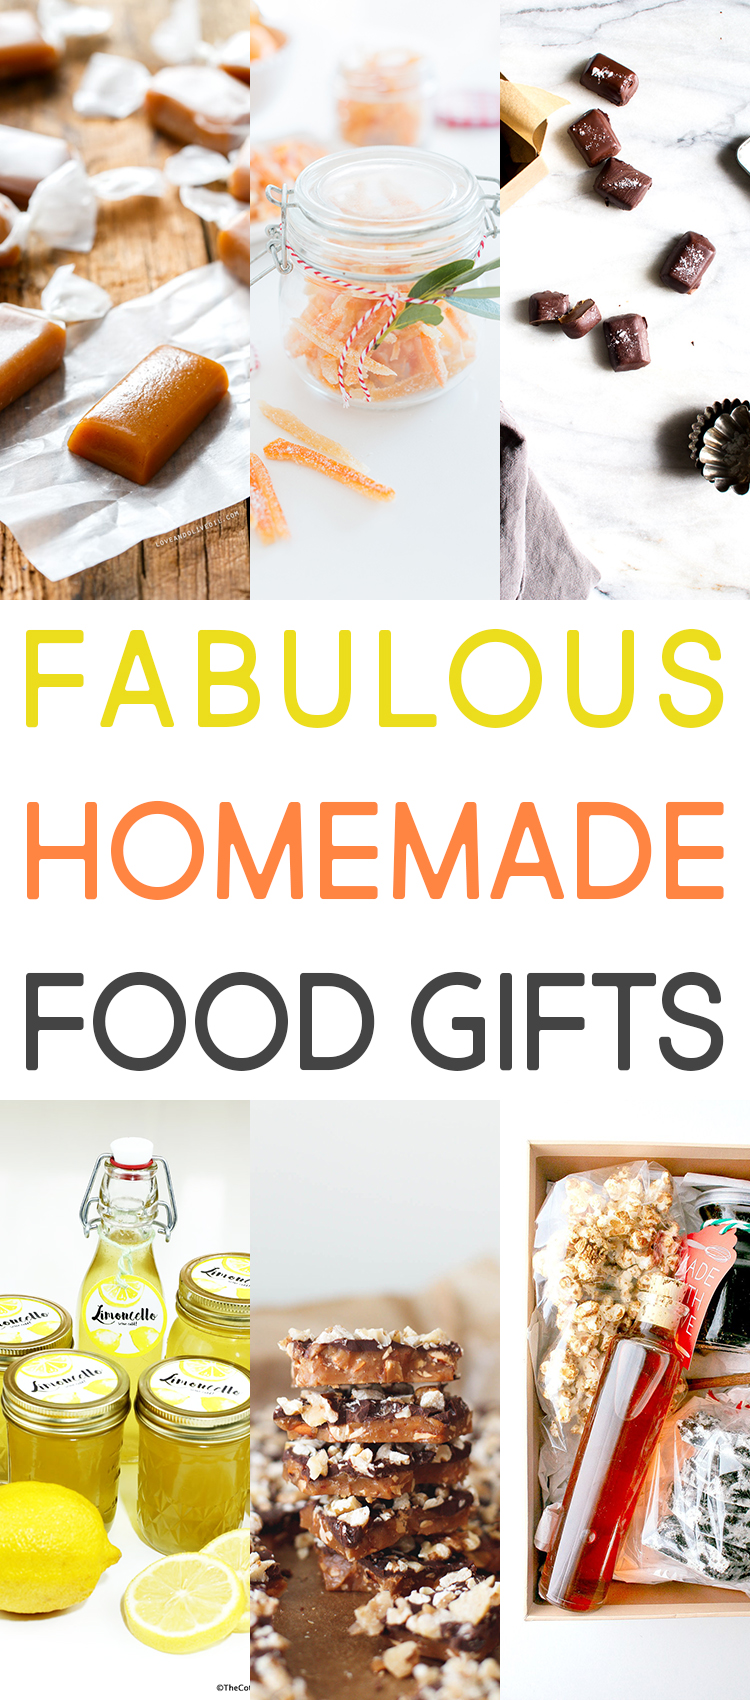 foodgifts-1